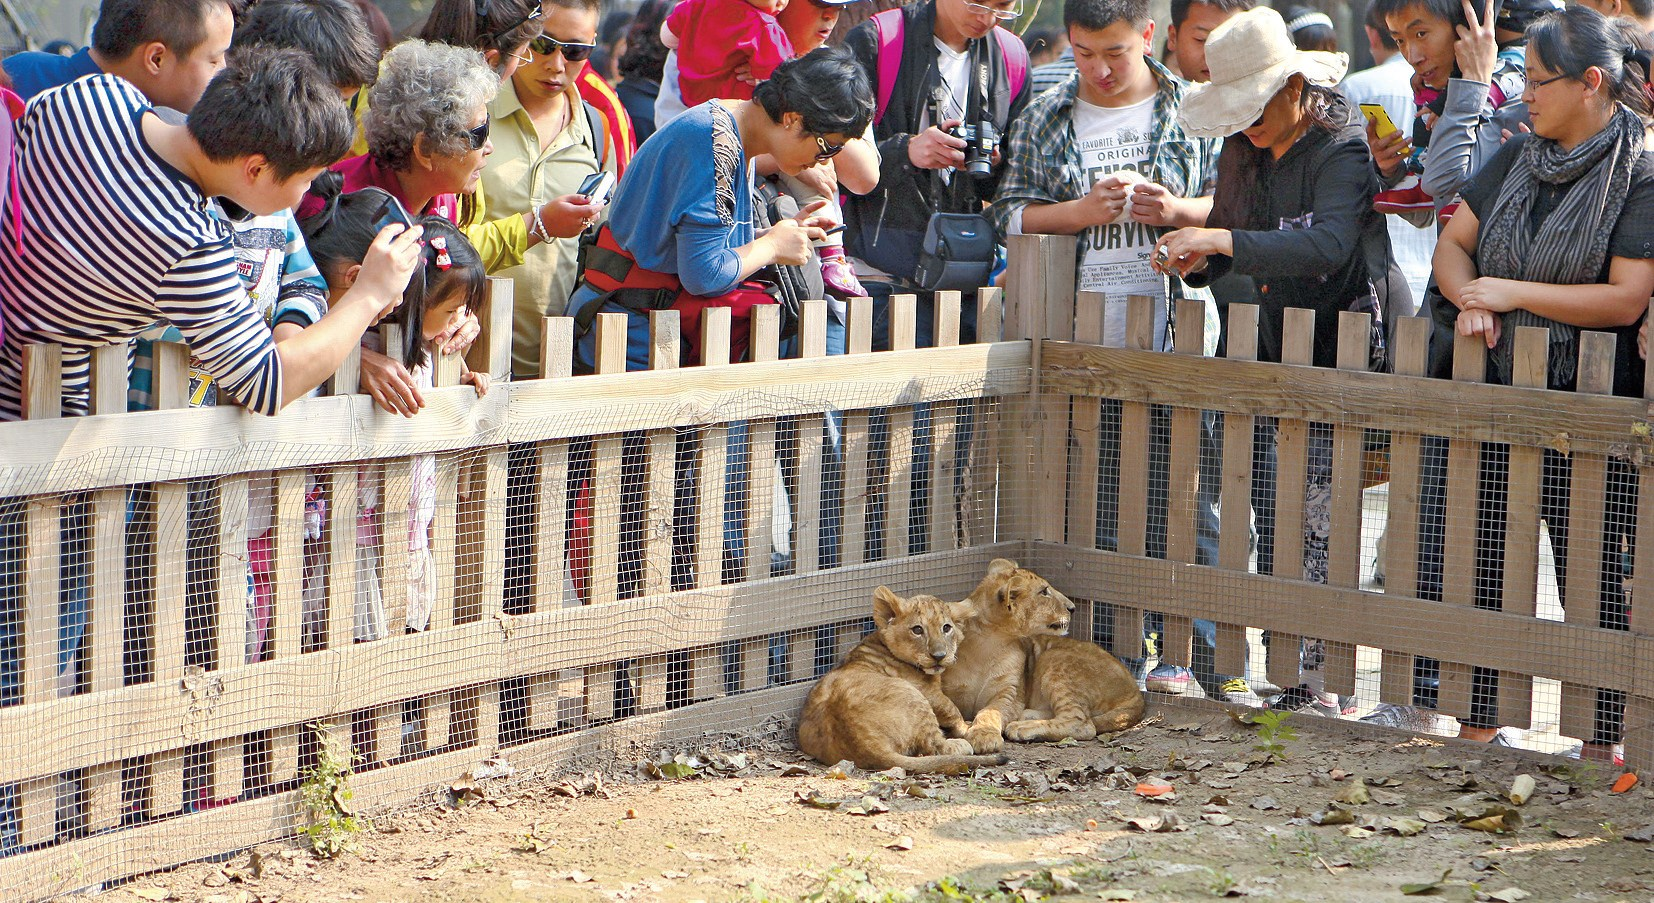 Visitors at Beijing Wildlife Park gather around lion cubs to take photos (left) and feed deer from a caged vehicle. The park came into the spotlight in July when a visitor was killed and another injured by Siberian tigers.